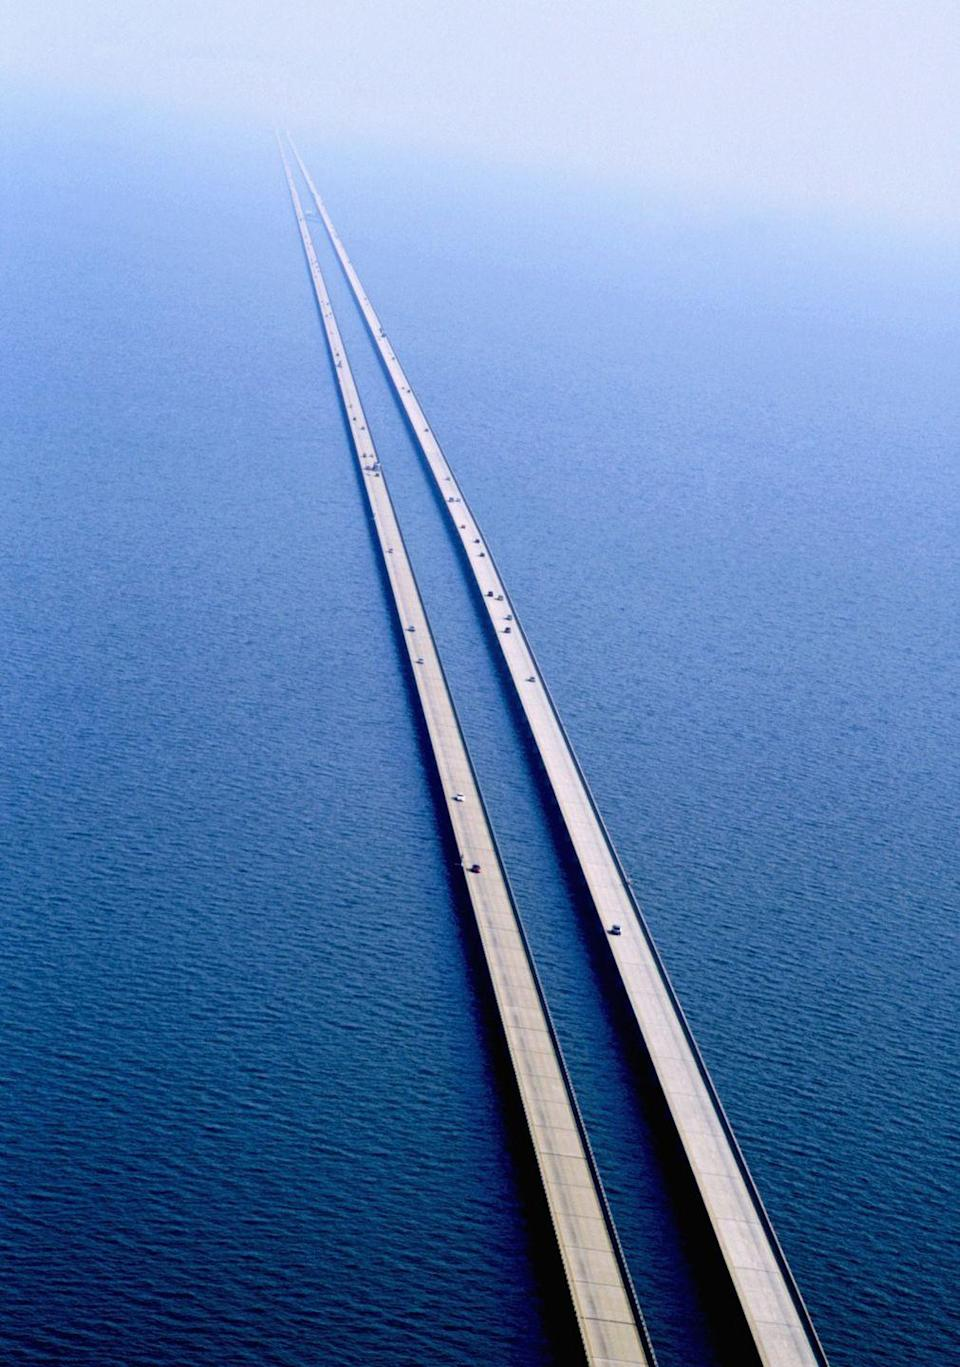 "<p> The Lake Pontchartrain Causeway bridge in New Orleans, Louisiana is the <a href=""https://www.atlasobscura.com/places/lake-pontchartrain-causeway"" rel=""nofollow noopener"" target=""_blank"" data-ylk=""slk:longest continuous bridge"" class=""link rapid-noclick-resp"">longest continuous bridge</a> passing over water. It's nearly 24 miles long (and for eight of those miles, you can't even see any land at all).  </p><p><strong>RELATED:</strong> <a href=""https://www.goodhousekeeping.com/life/travel/g2425/beautiful-photos-america/"" rel=""nofollow noopener"" target=""_blank"" data-ylk=""slk:51 Photos That Prove America Truly Is Beautiful"" class=""link rapid-noclick-resp"">51 Photos That Prove America Truly Is Beautiful</a></p>"